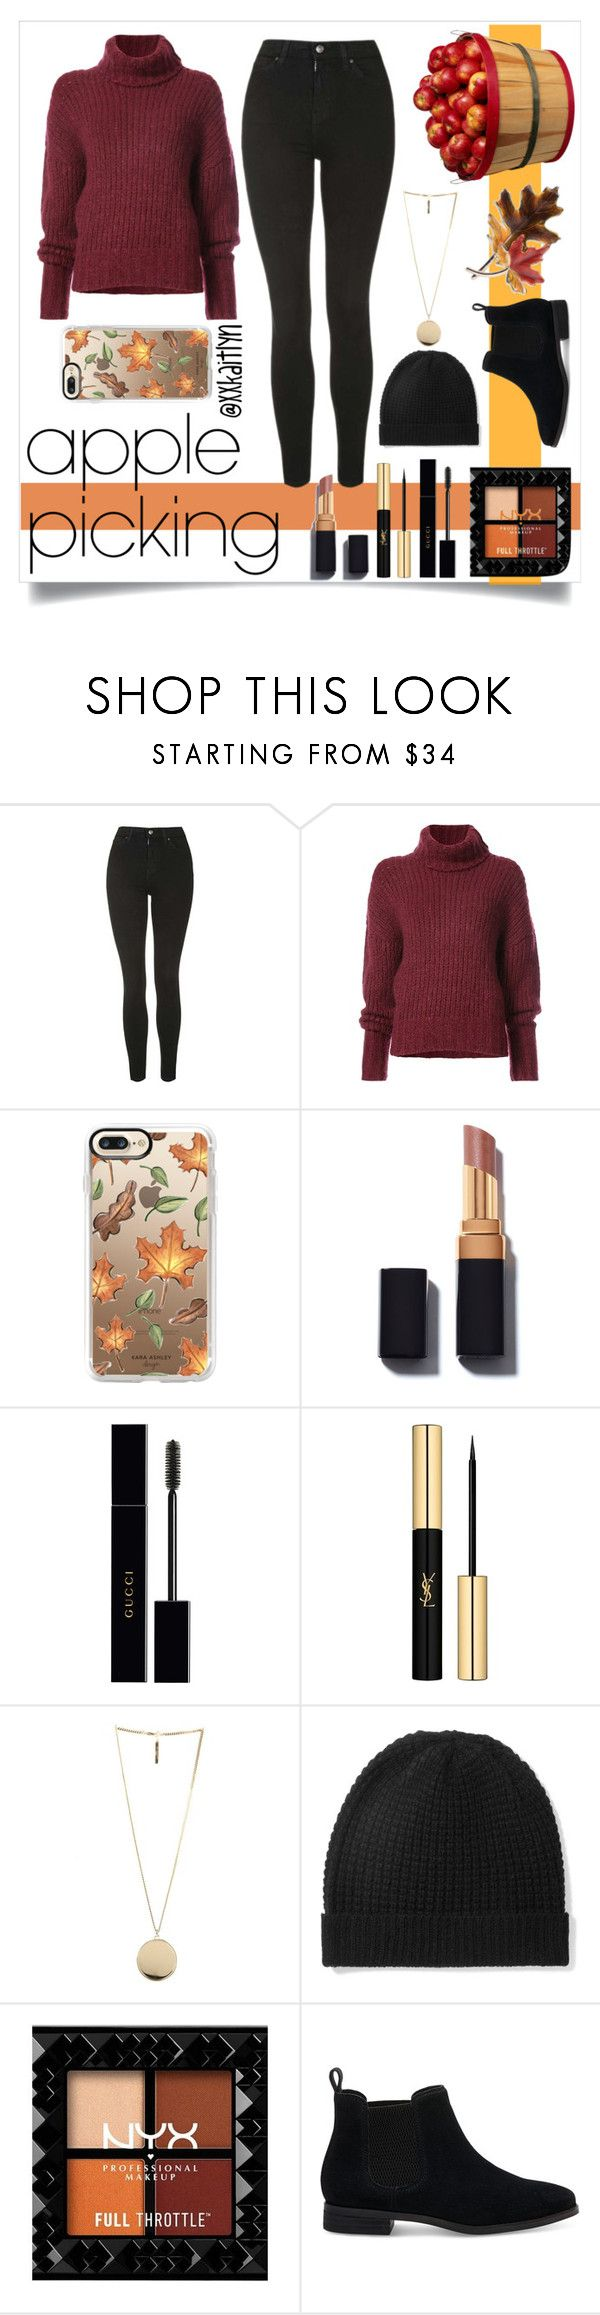 """Apple Picking"" by xxkaitlyn on Polyvore featuring Topshop, BY. Bonnie Young, Casetify, Gucci, Yves Saint Laurent, Givenchy, Madeleine Thompson, TOMS and Anne Klein"